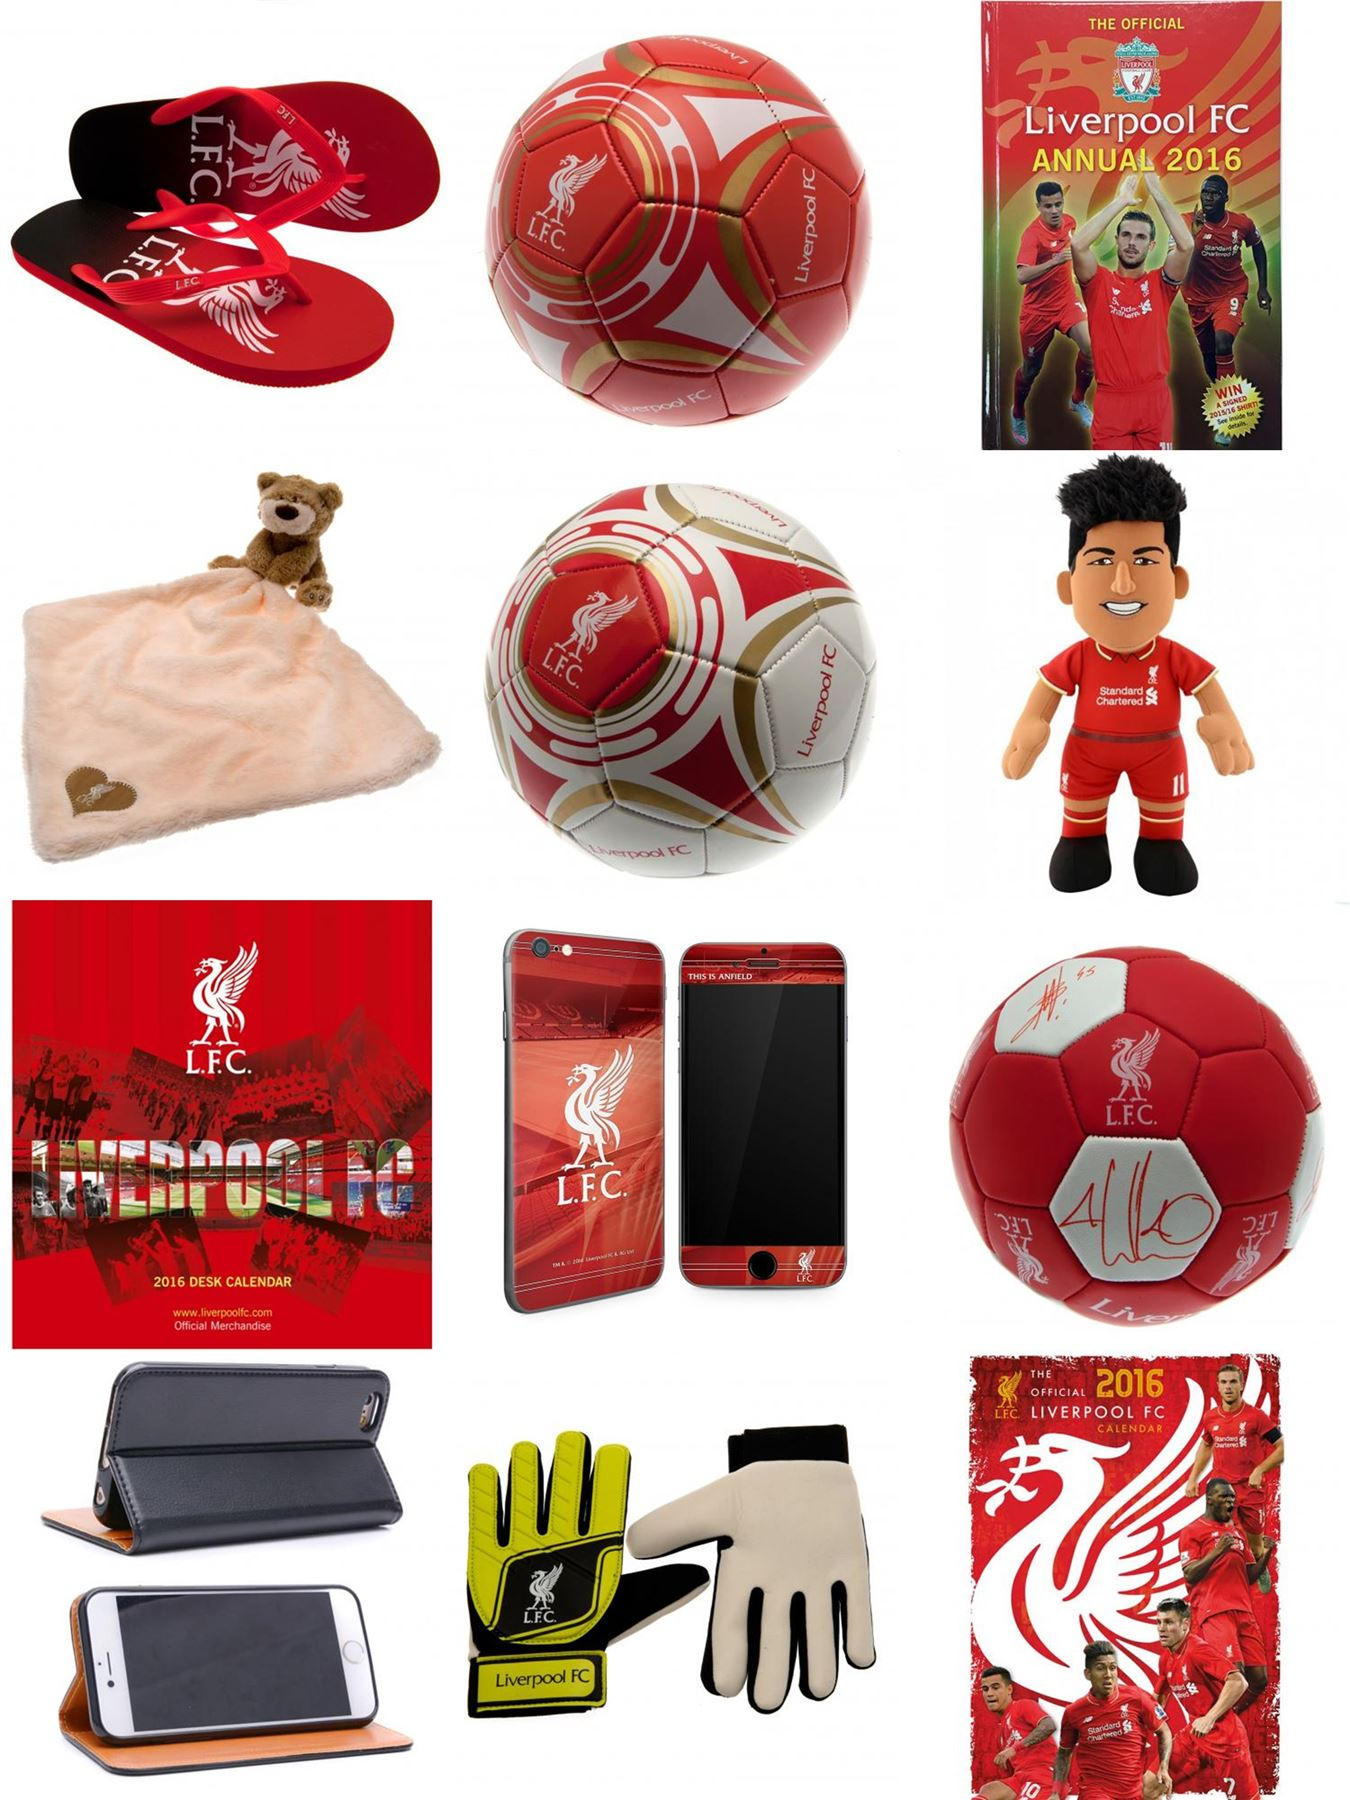 Birthday Gift Idea For Men And Boys Liverpool FC Official Football Gift Goalie Glove Keyring A Great Christmas